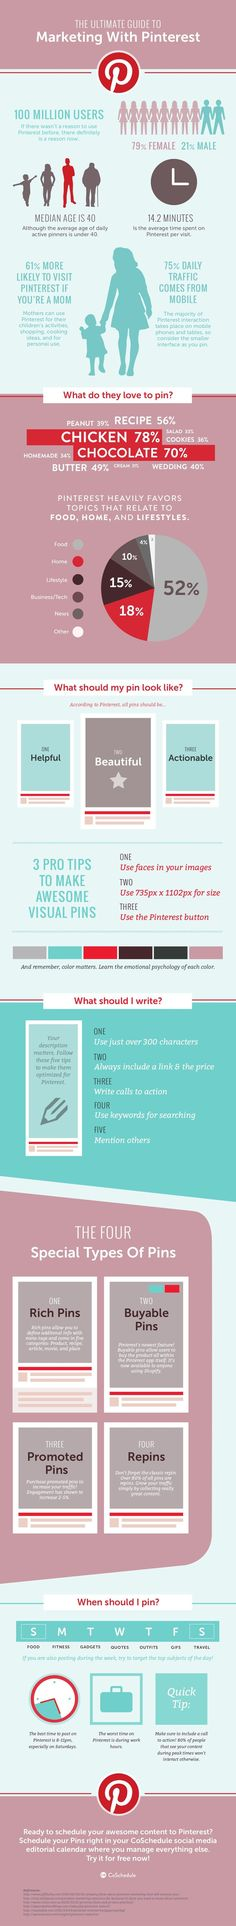 The Ultimate Guide On How To Use Pinterest For Marketing - infographic. #marketing #socialmedia #pinterest